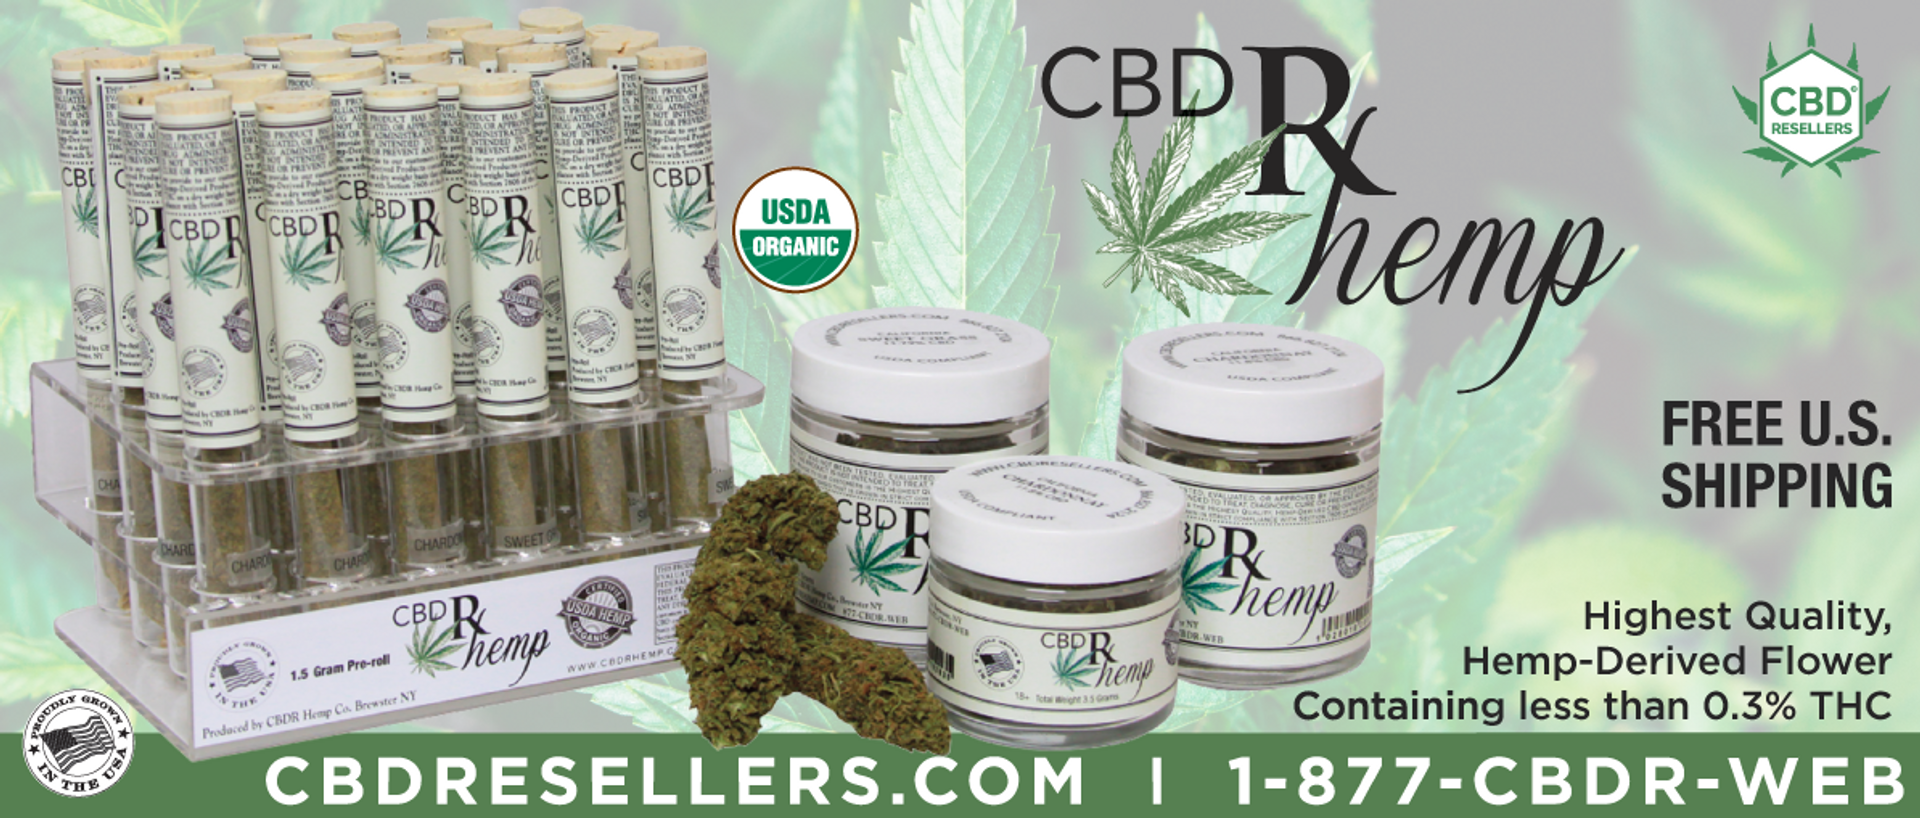 The CBDR Hemp Corporation Brings you our CBDRHemp Brand of The Highest Quality  USDA Certified Smokable Hemp-Derived CBD Flower is on CBDResellers